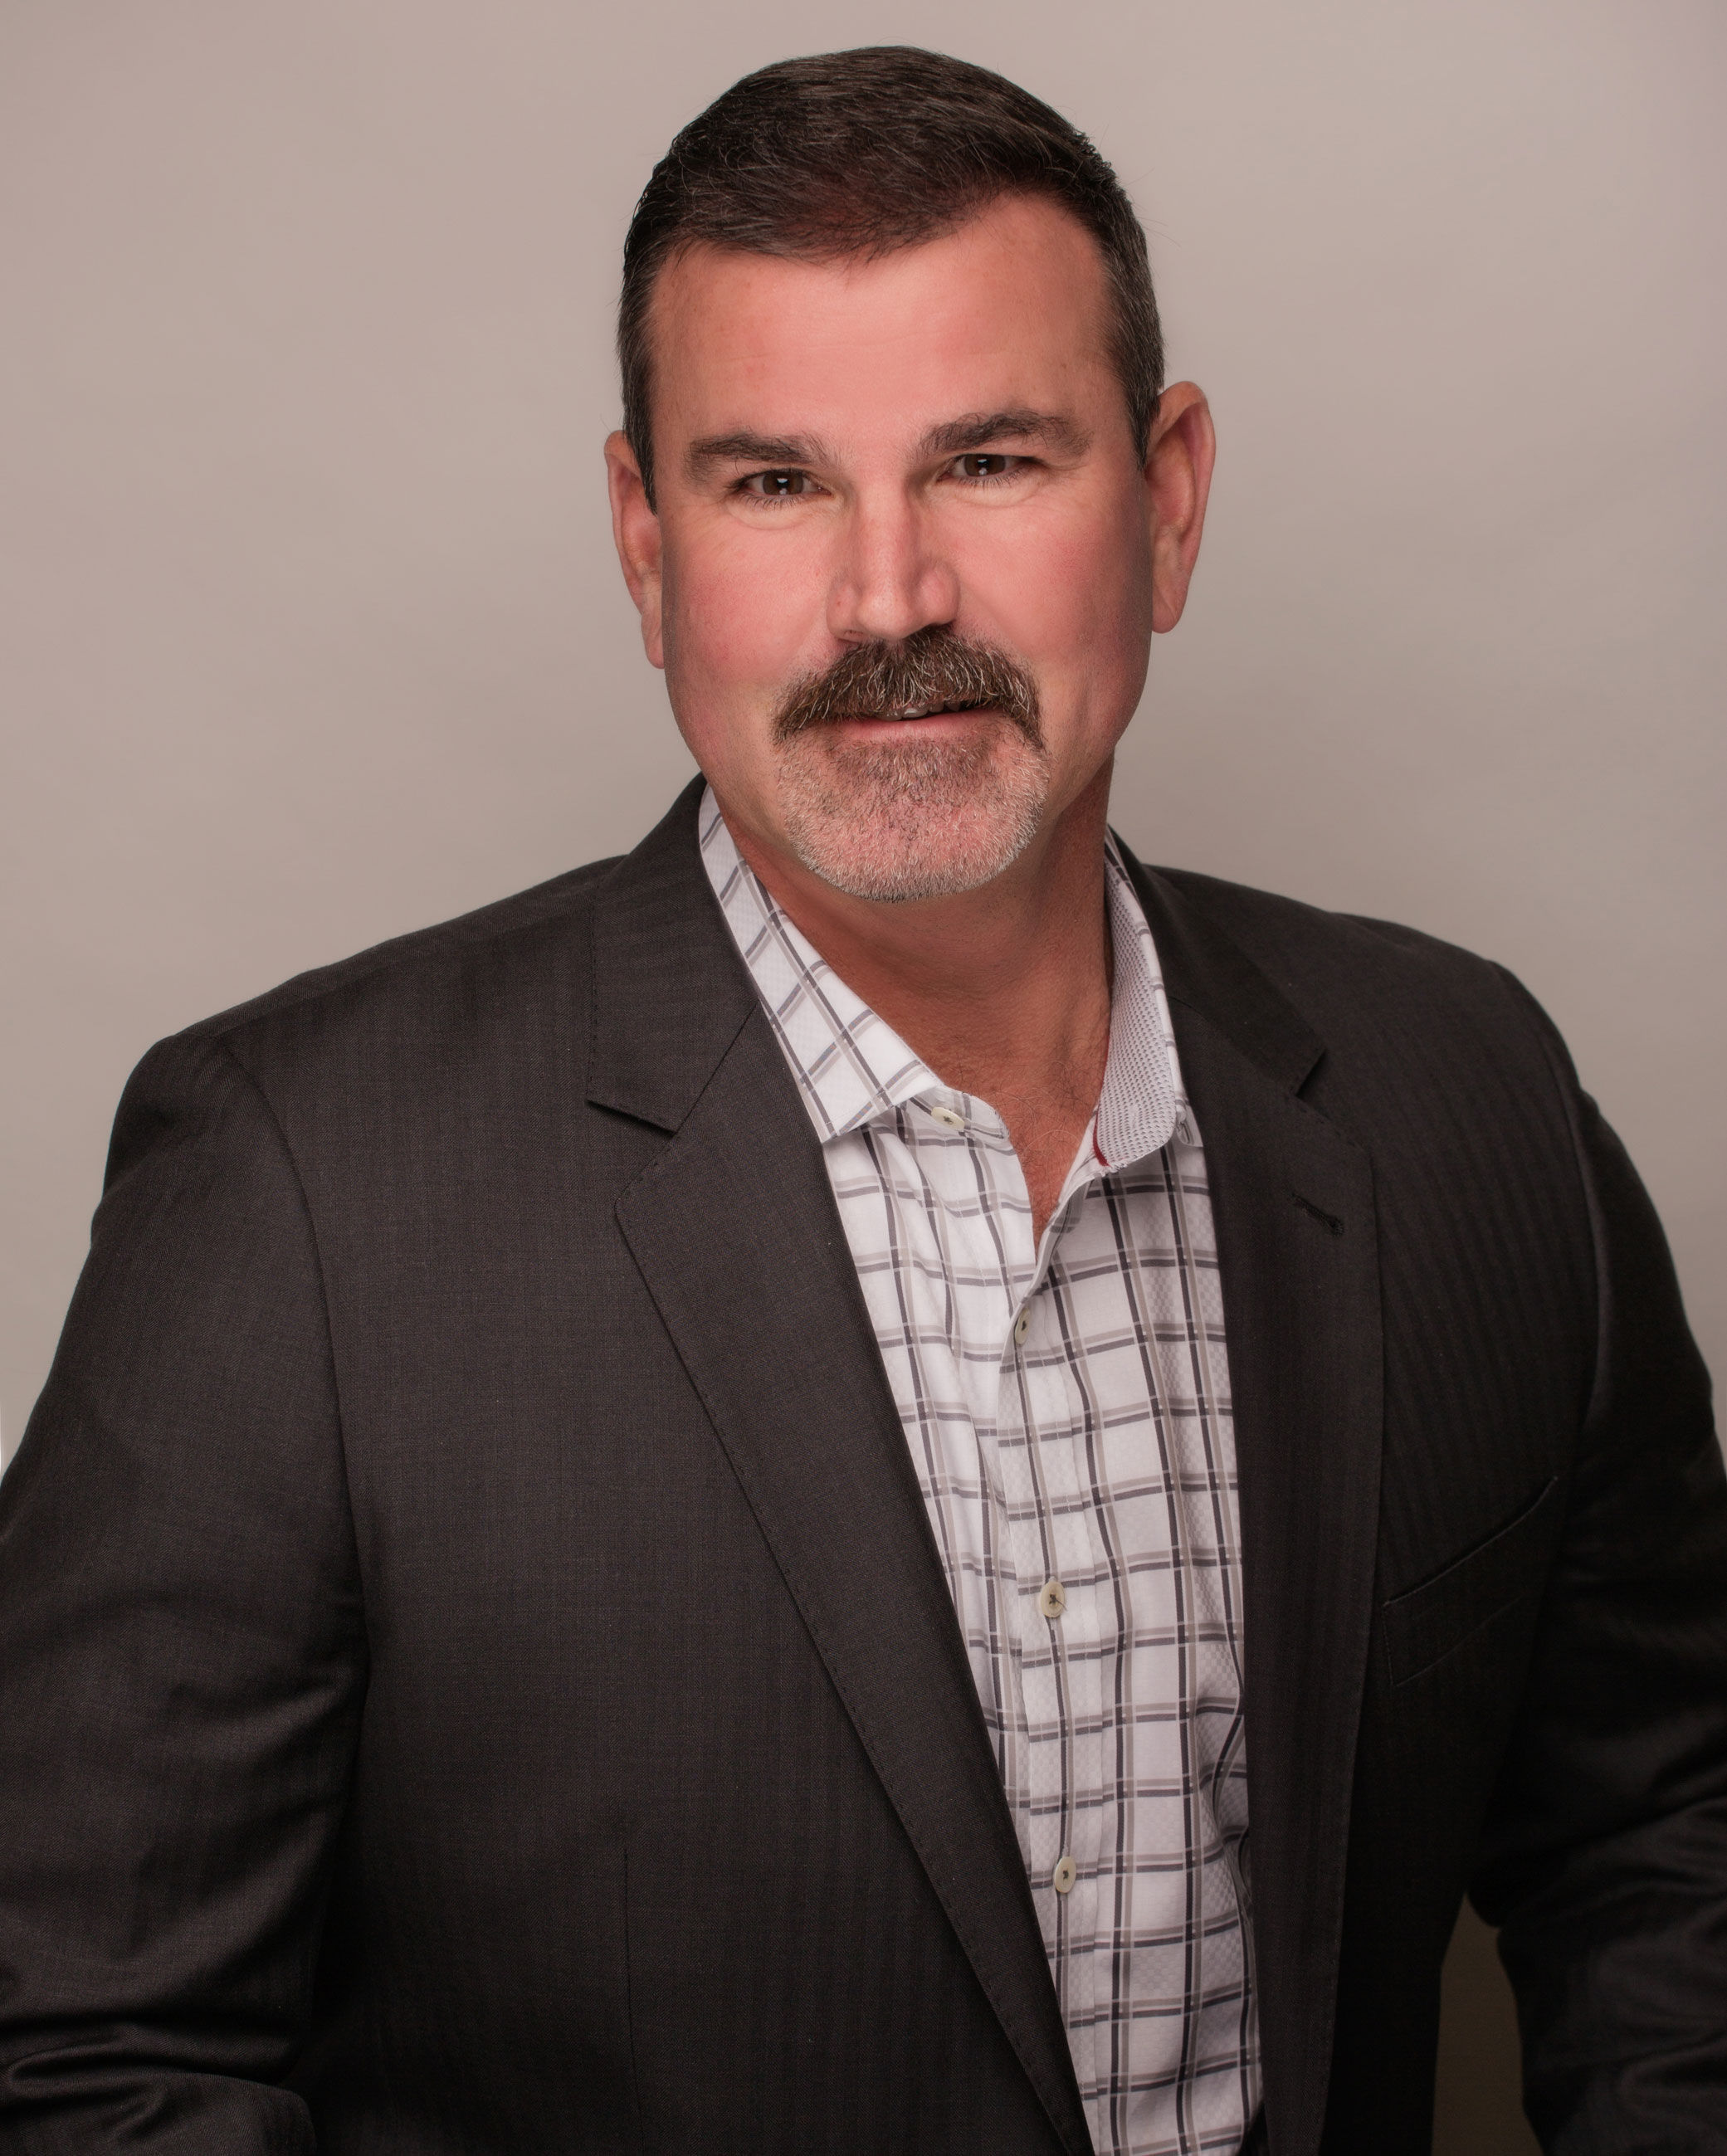 Dave Sanson - Chief Executive Officer